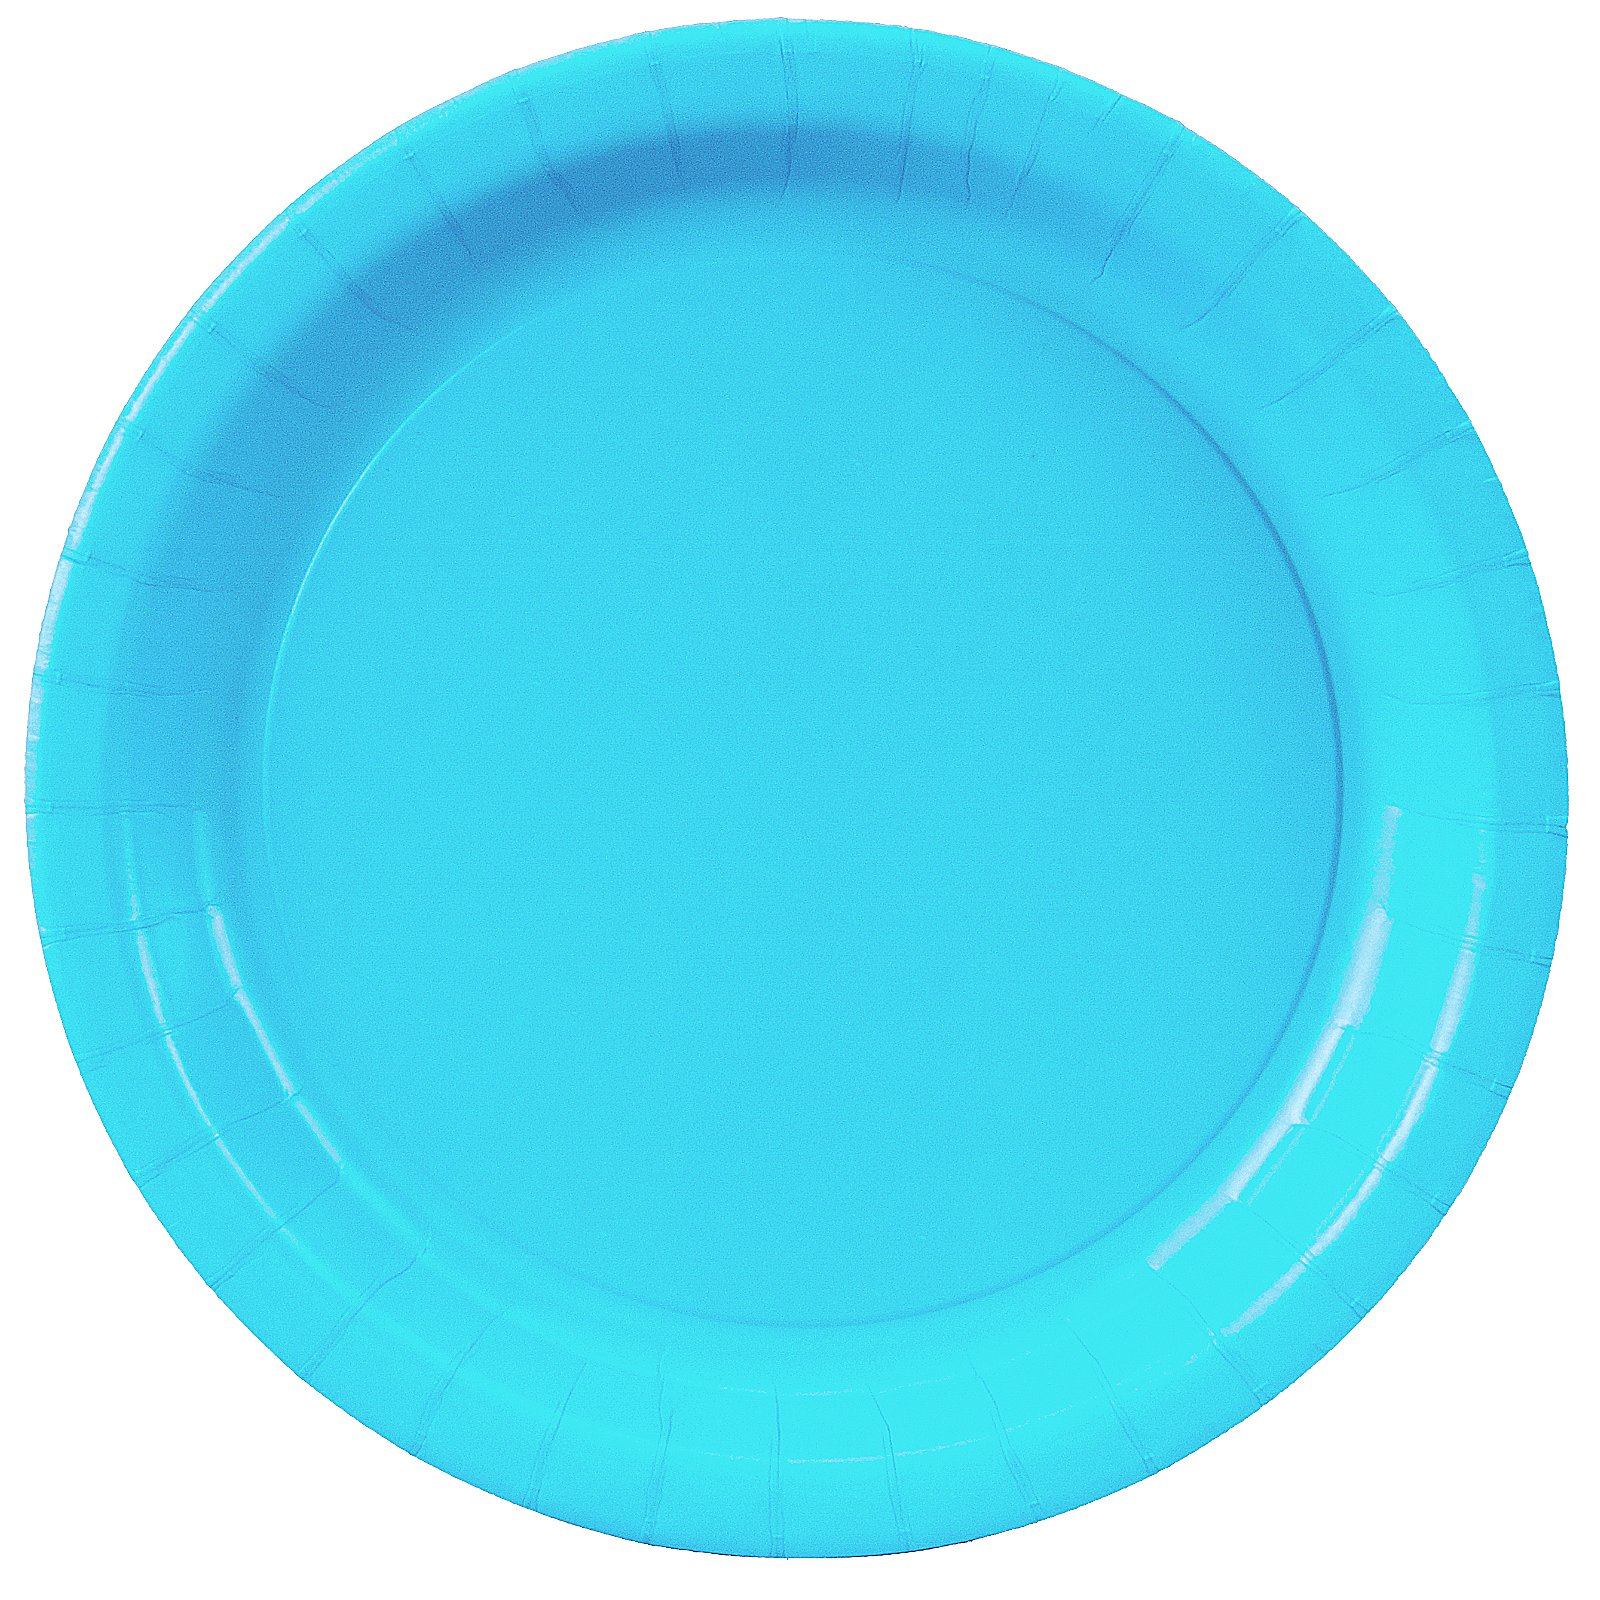 Bermuda Blue (Turquoise) Paper Dinner Plates (24 count)